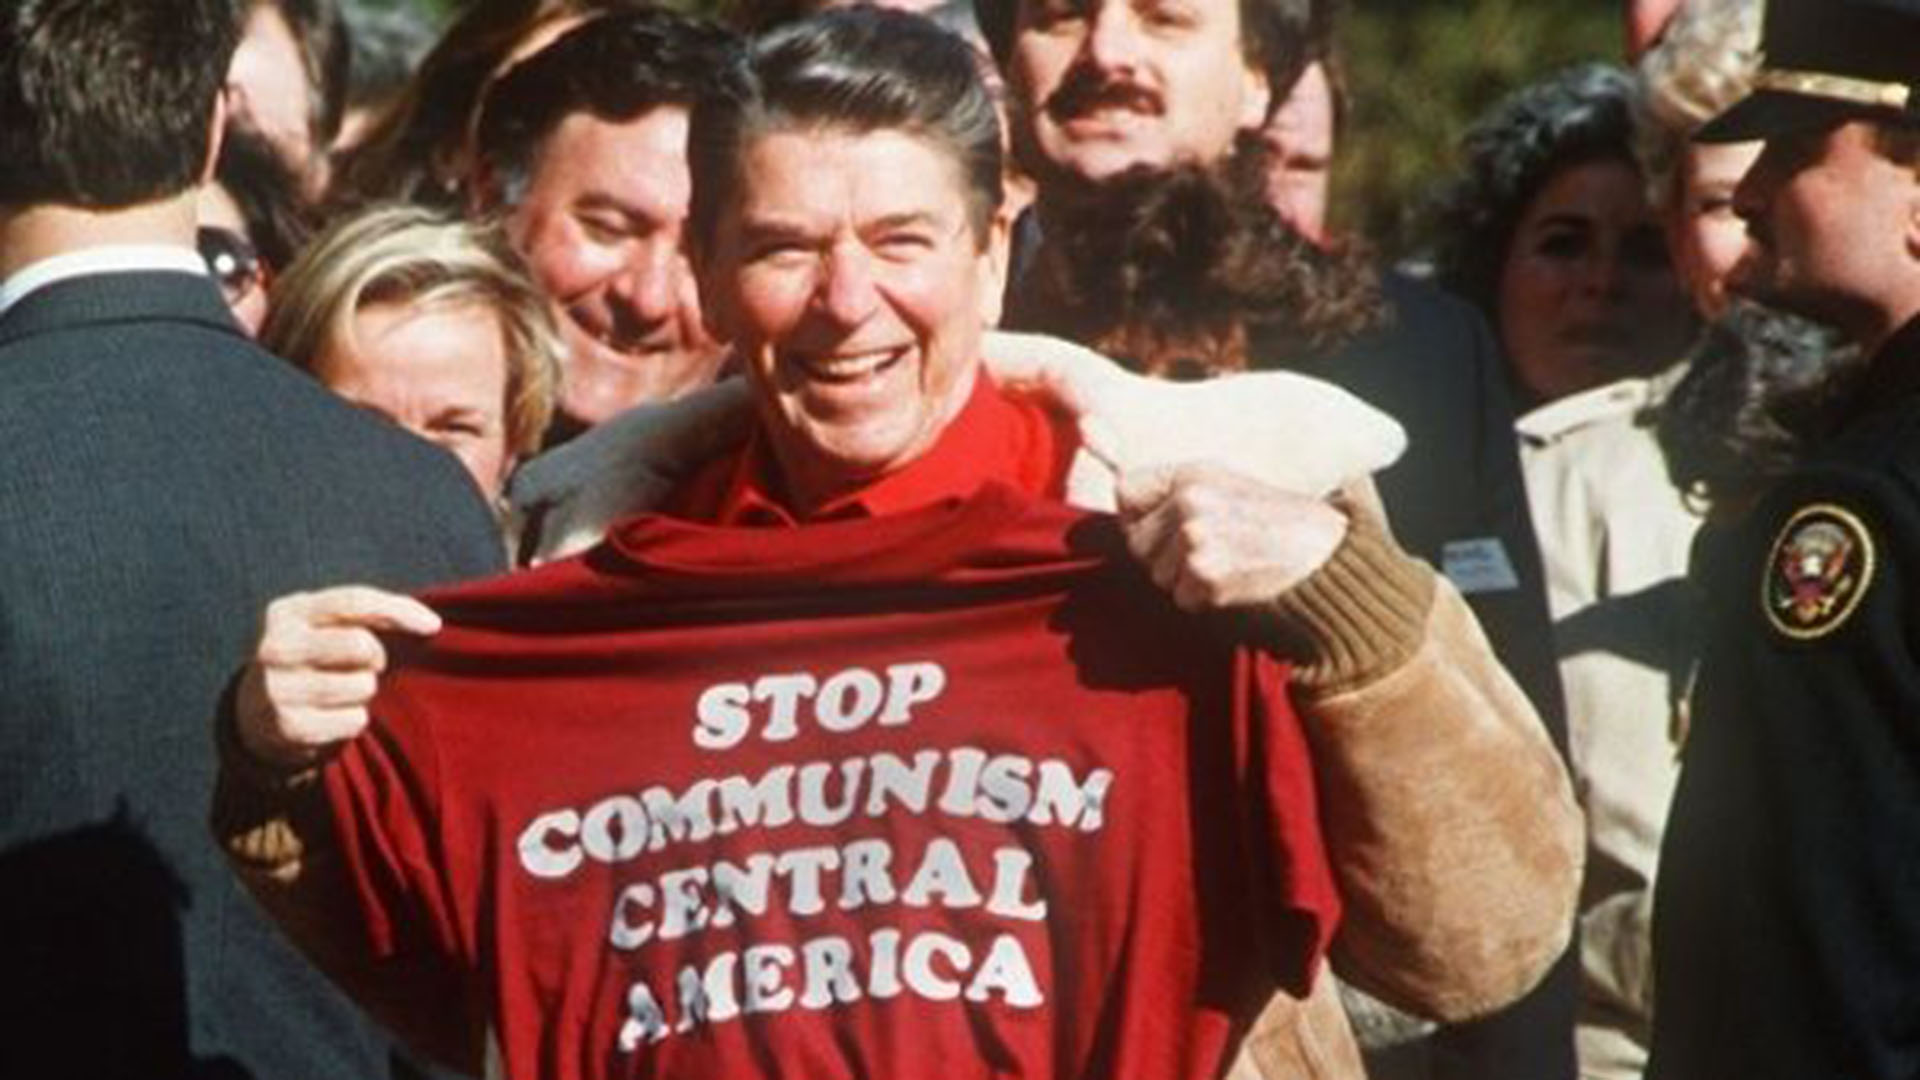 Reagan holds up t-shirt